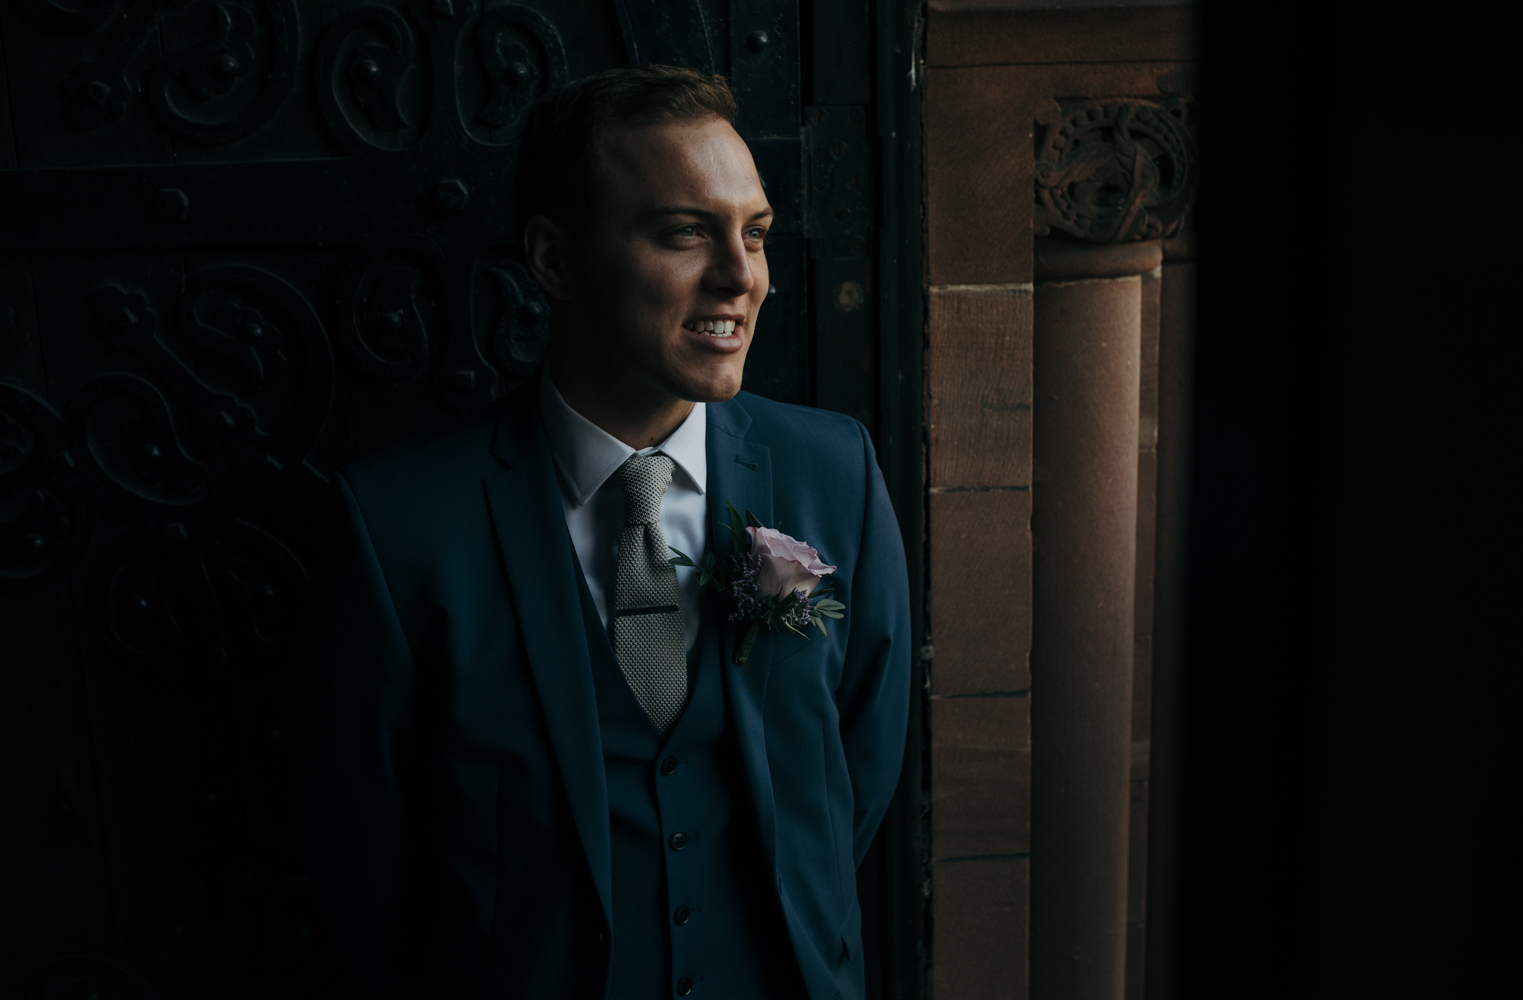 The groom waiting to welcome wedding guests